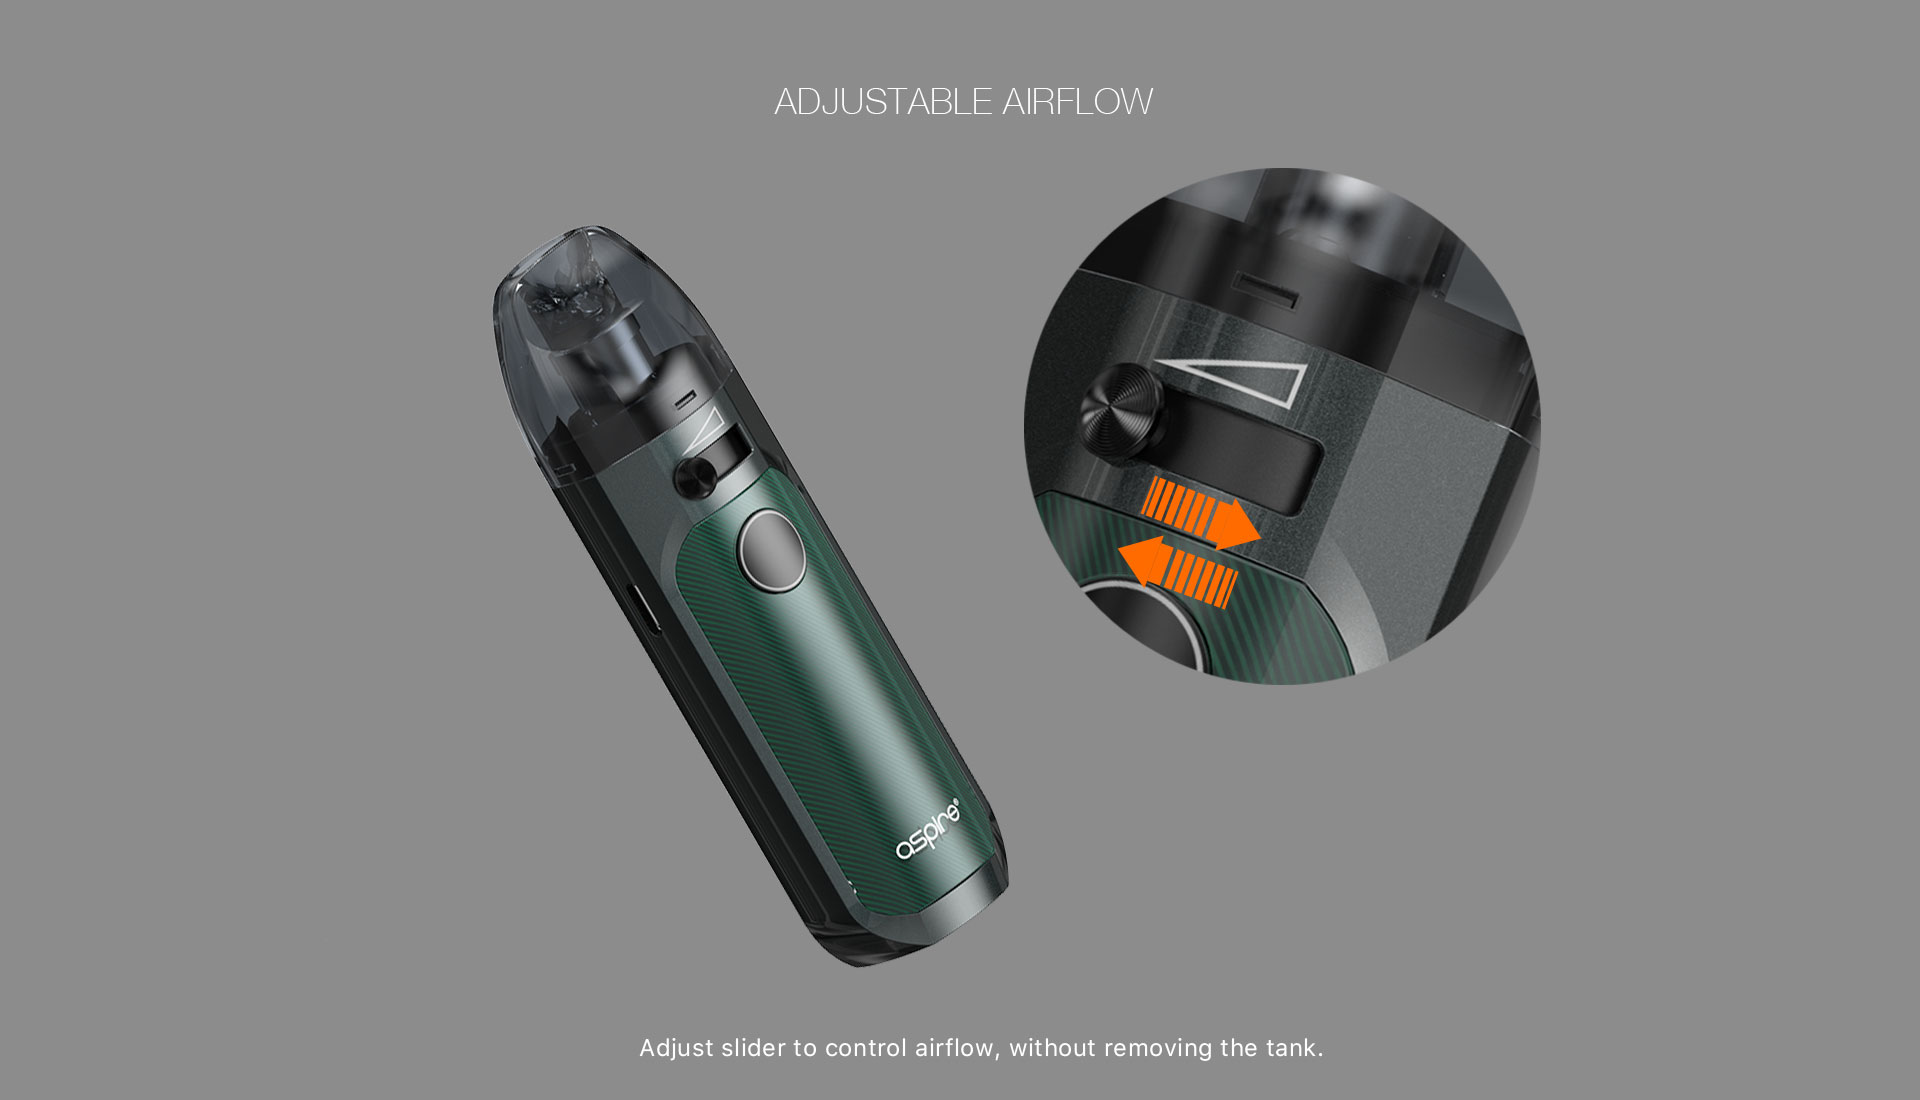 Aspire Tigon AIO 4.6ml Pod System